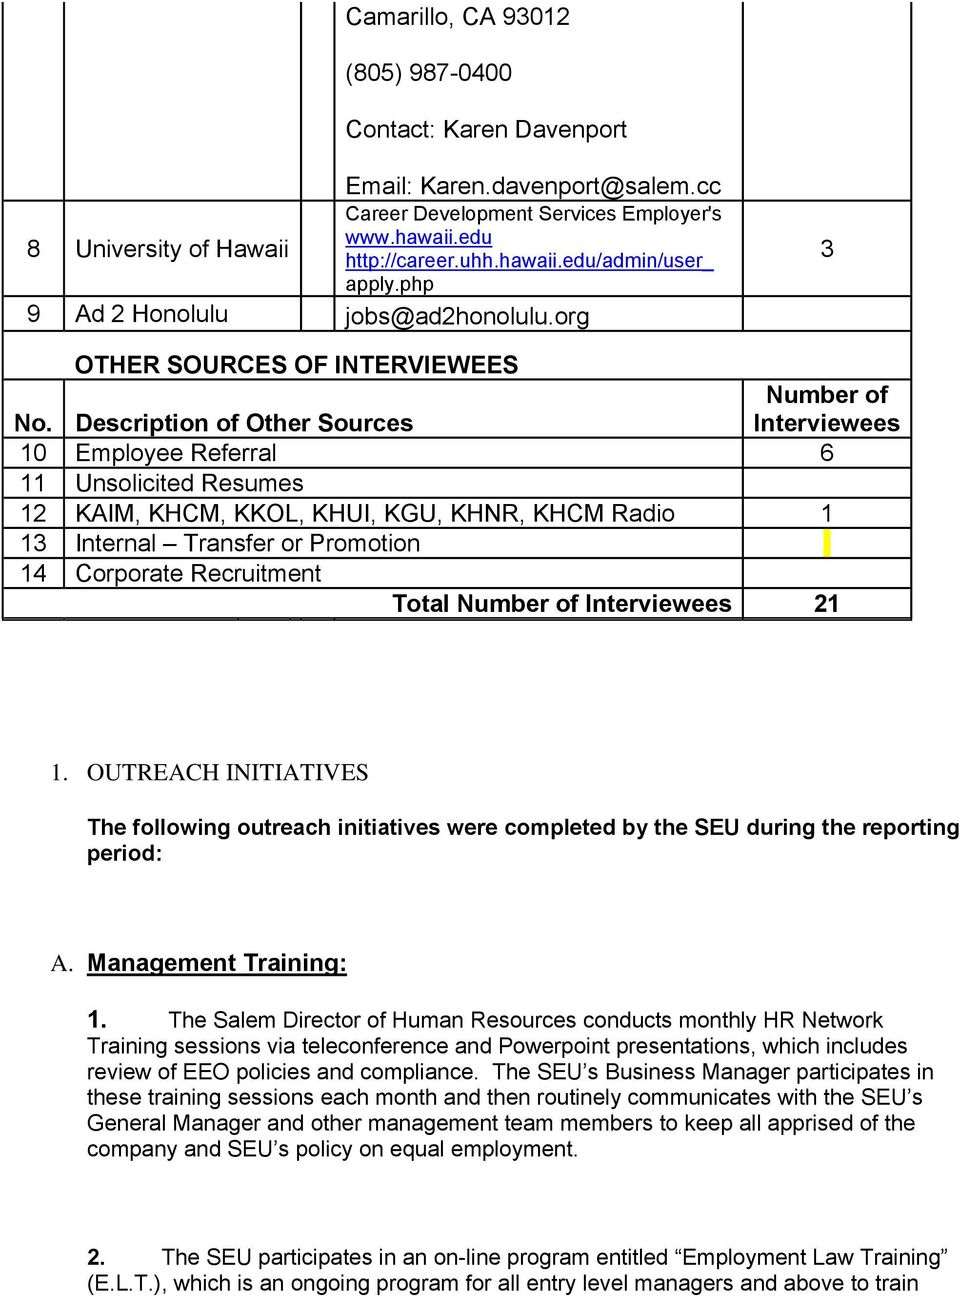 Description of Other Sources Interviewees 10 Employee Referral 6 11 Unsolicited Resumes 12 KAIM, KHCM, KKOL, KHUI, KGU, KHNR, KHCM Radio 1 13 Internal Transfer or Promotion 14 Corporate Recruitment